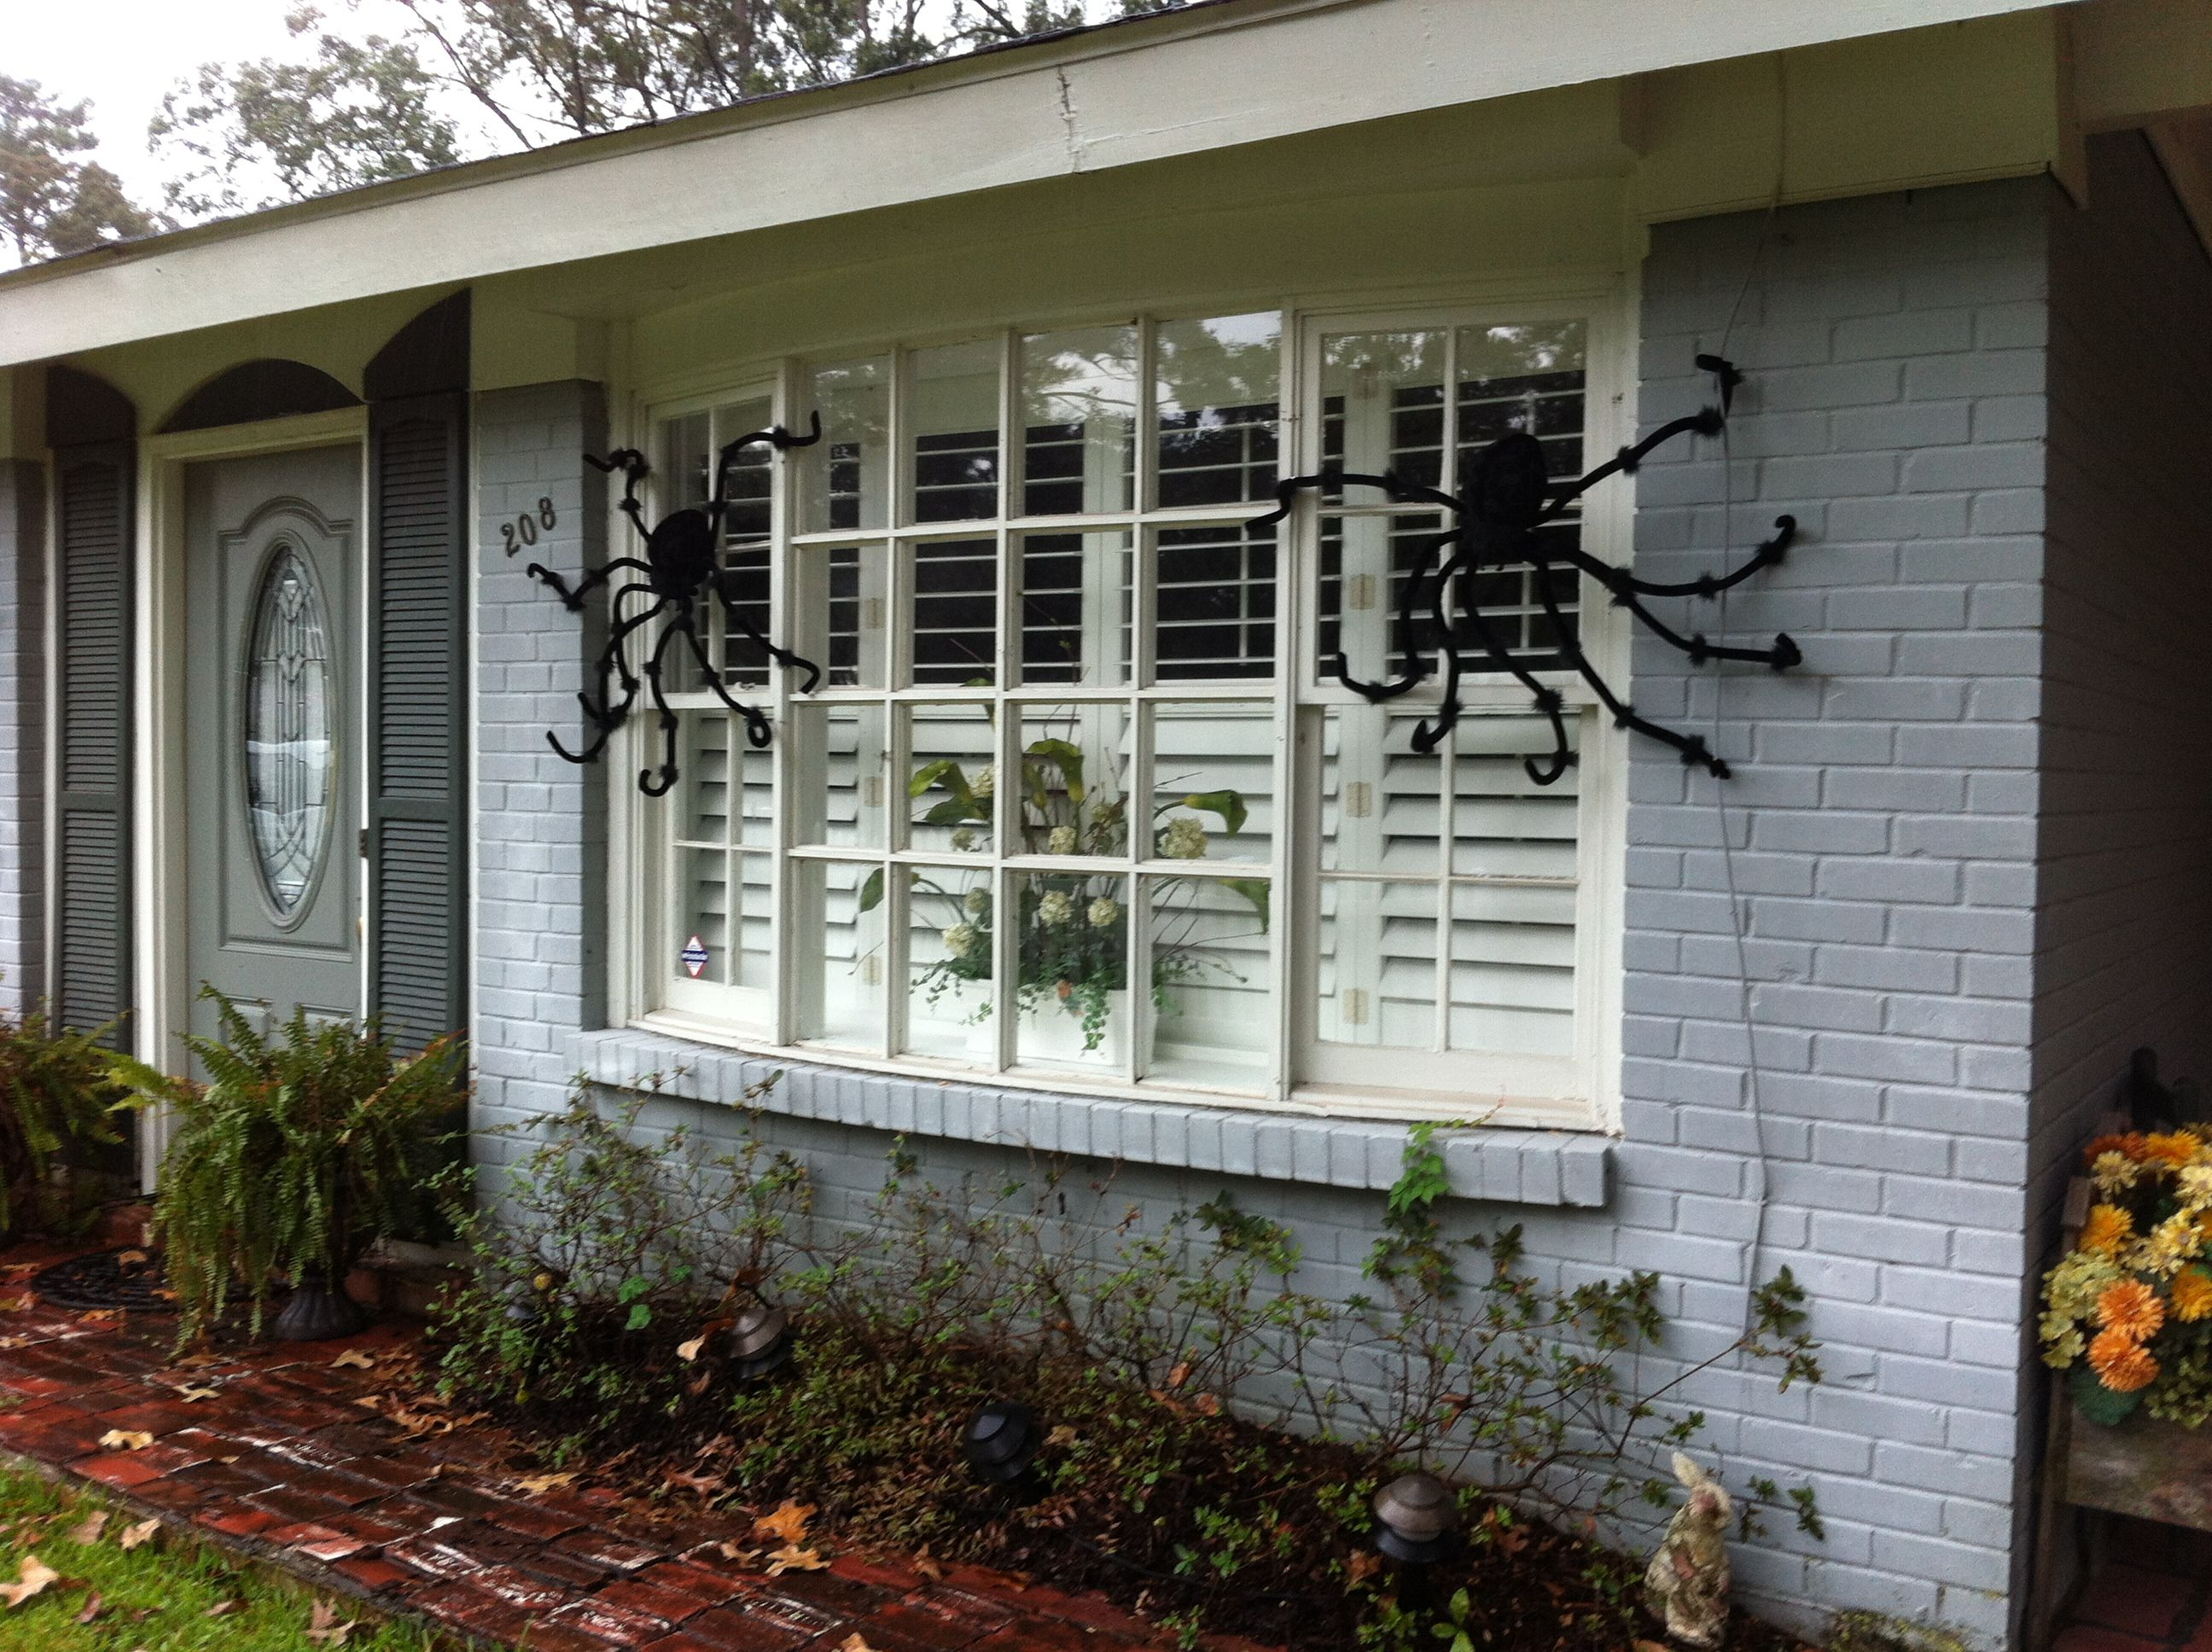 Park Art My WordPress Blog_How To Keep Spider Webs Out Of Garage